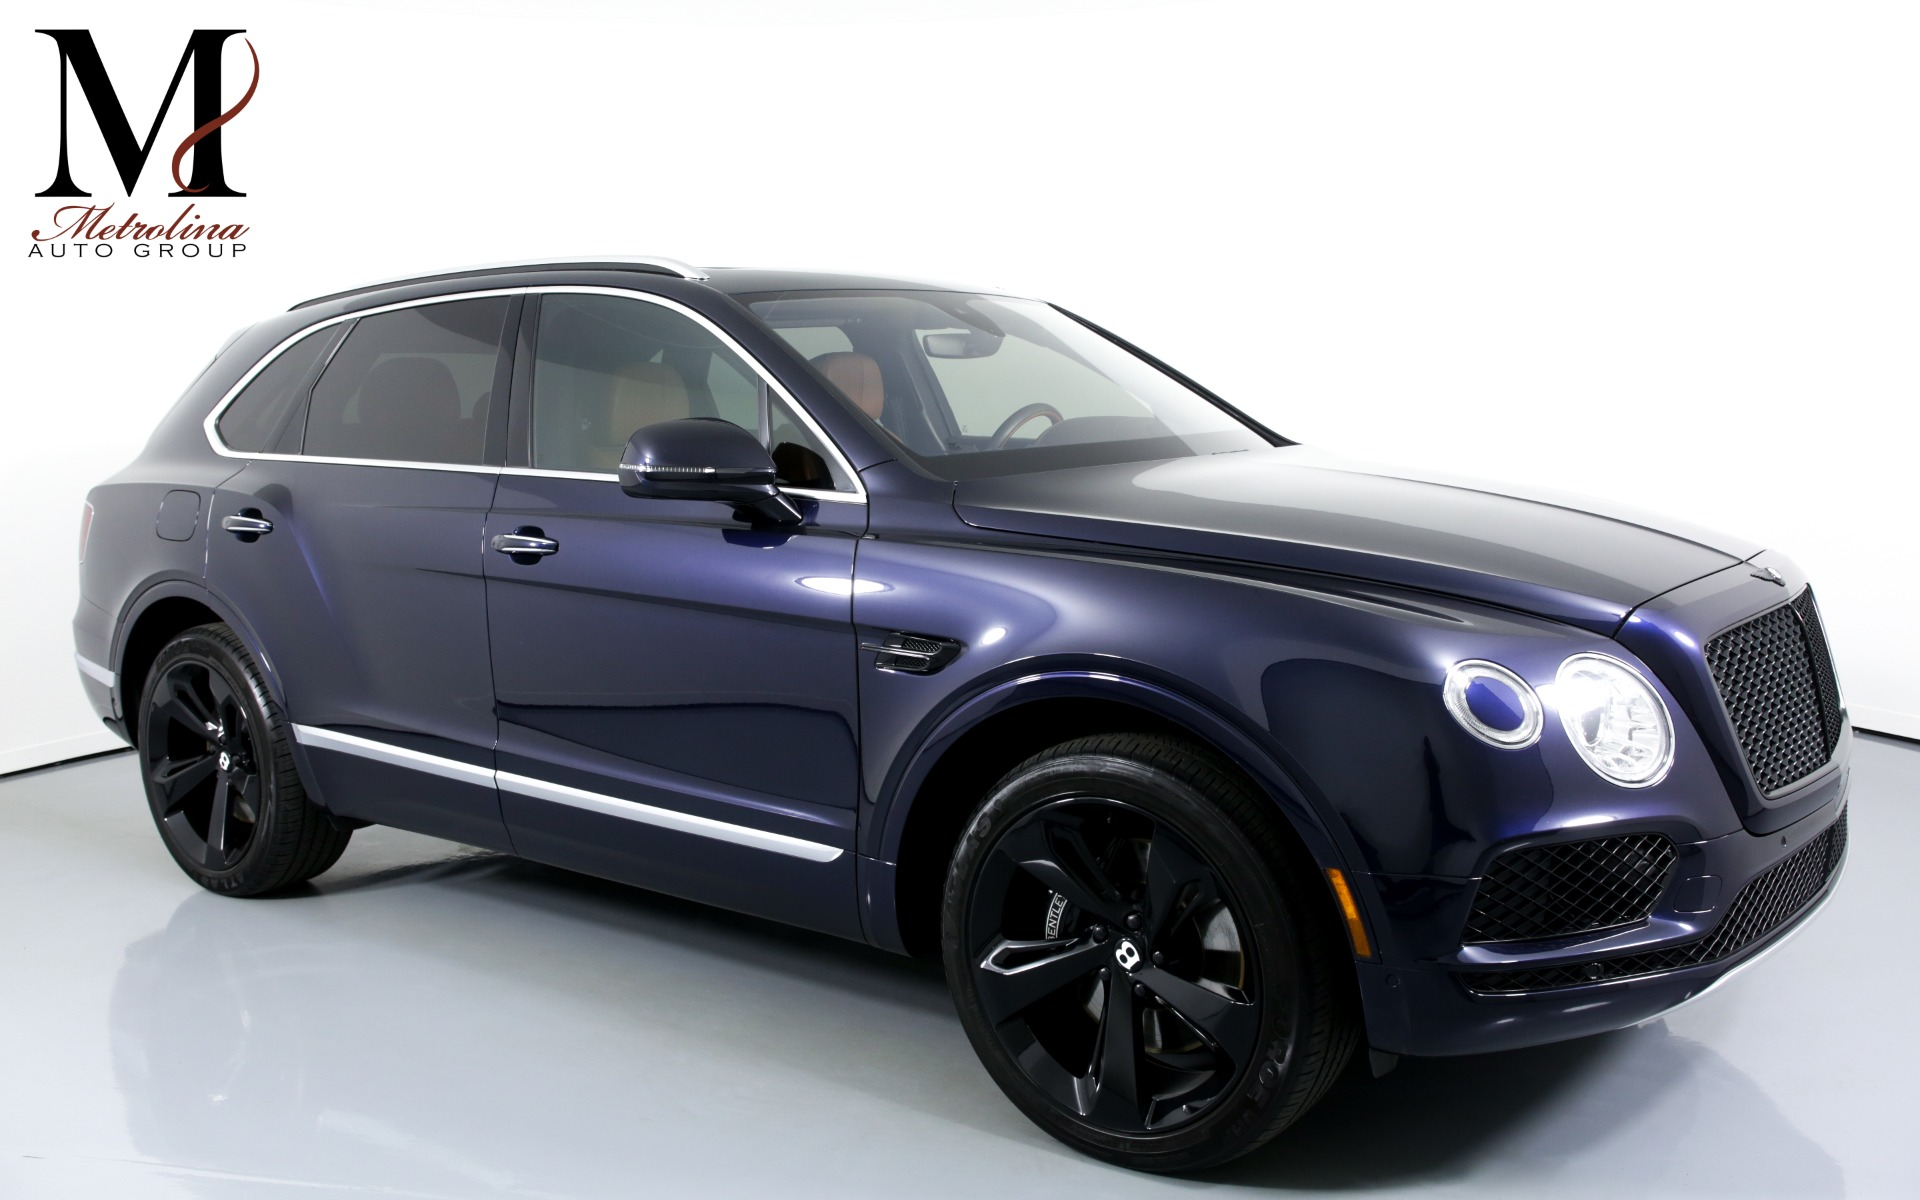 Used 2017 Bentley Bentayga W12 for sale $129,996 at Metrolina Auto Group in Charlotte NC 28217 - 1